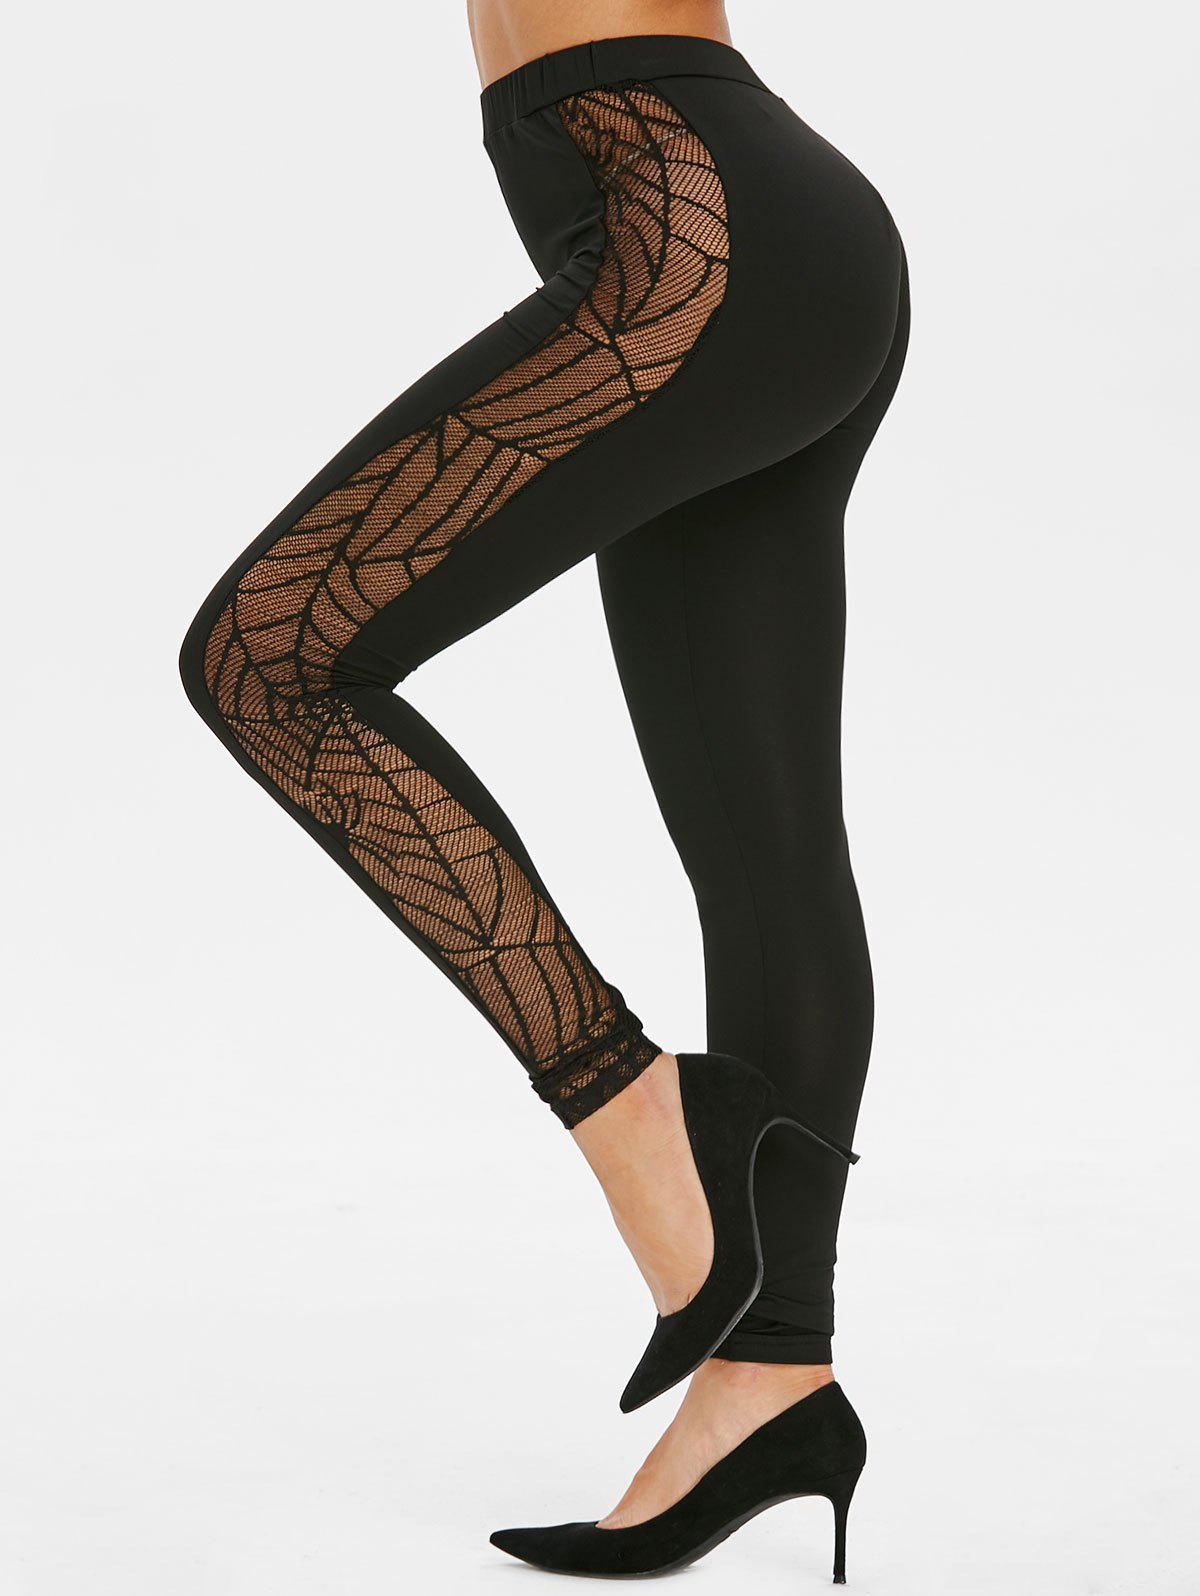 Shop Sheer Spider Web Lace Gothic Skinny Leggings